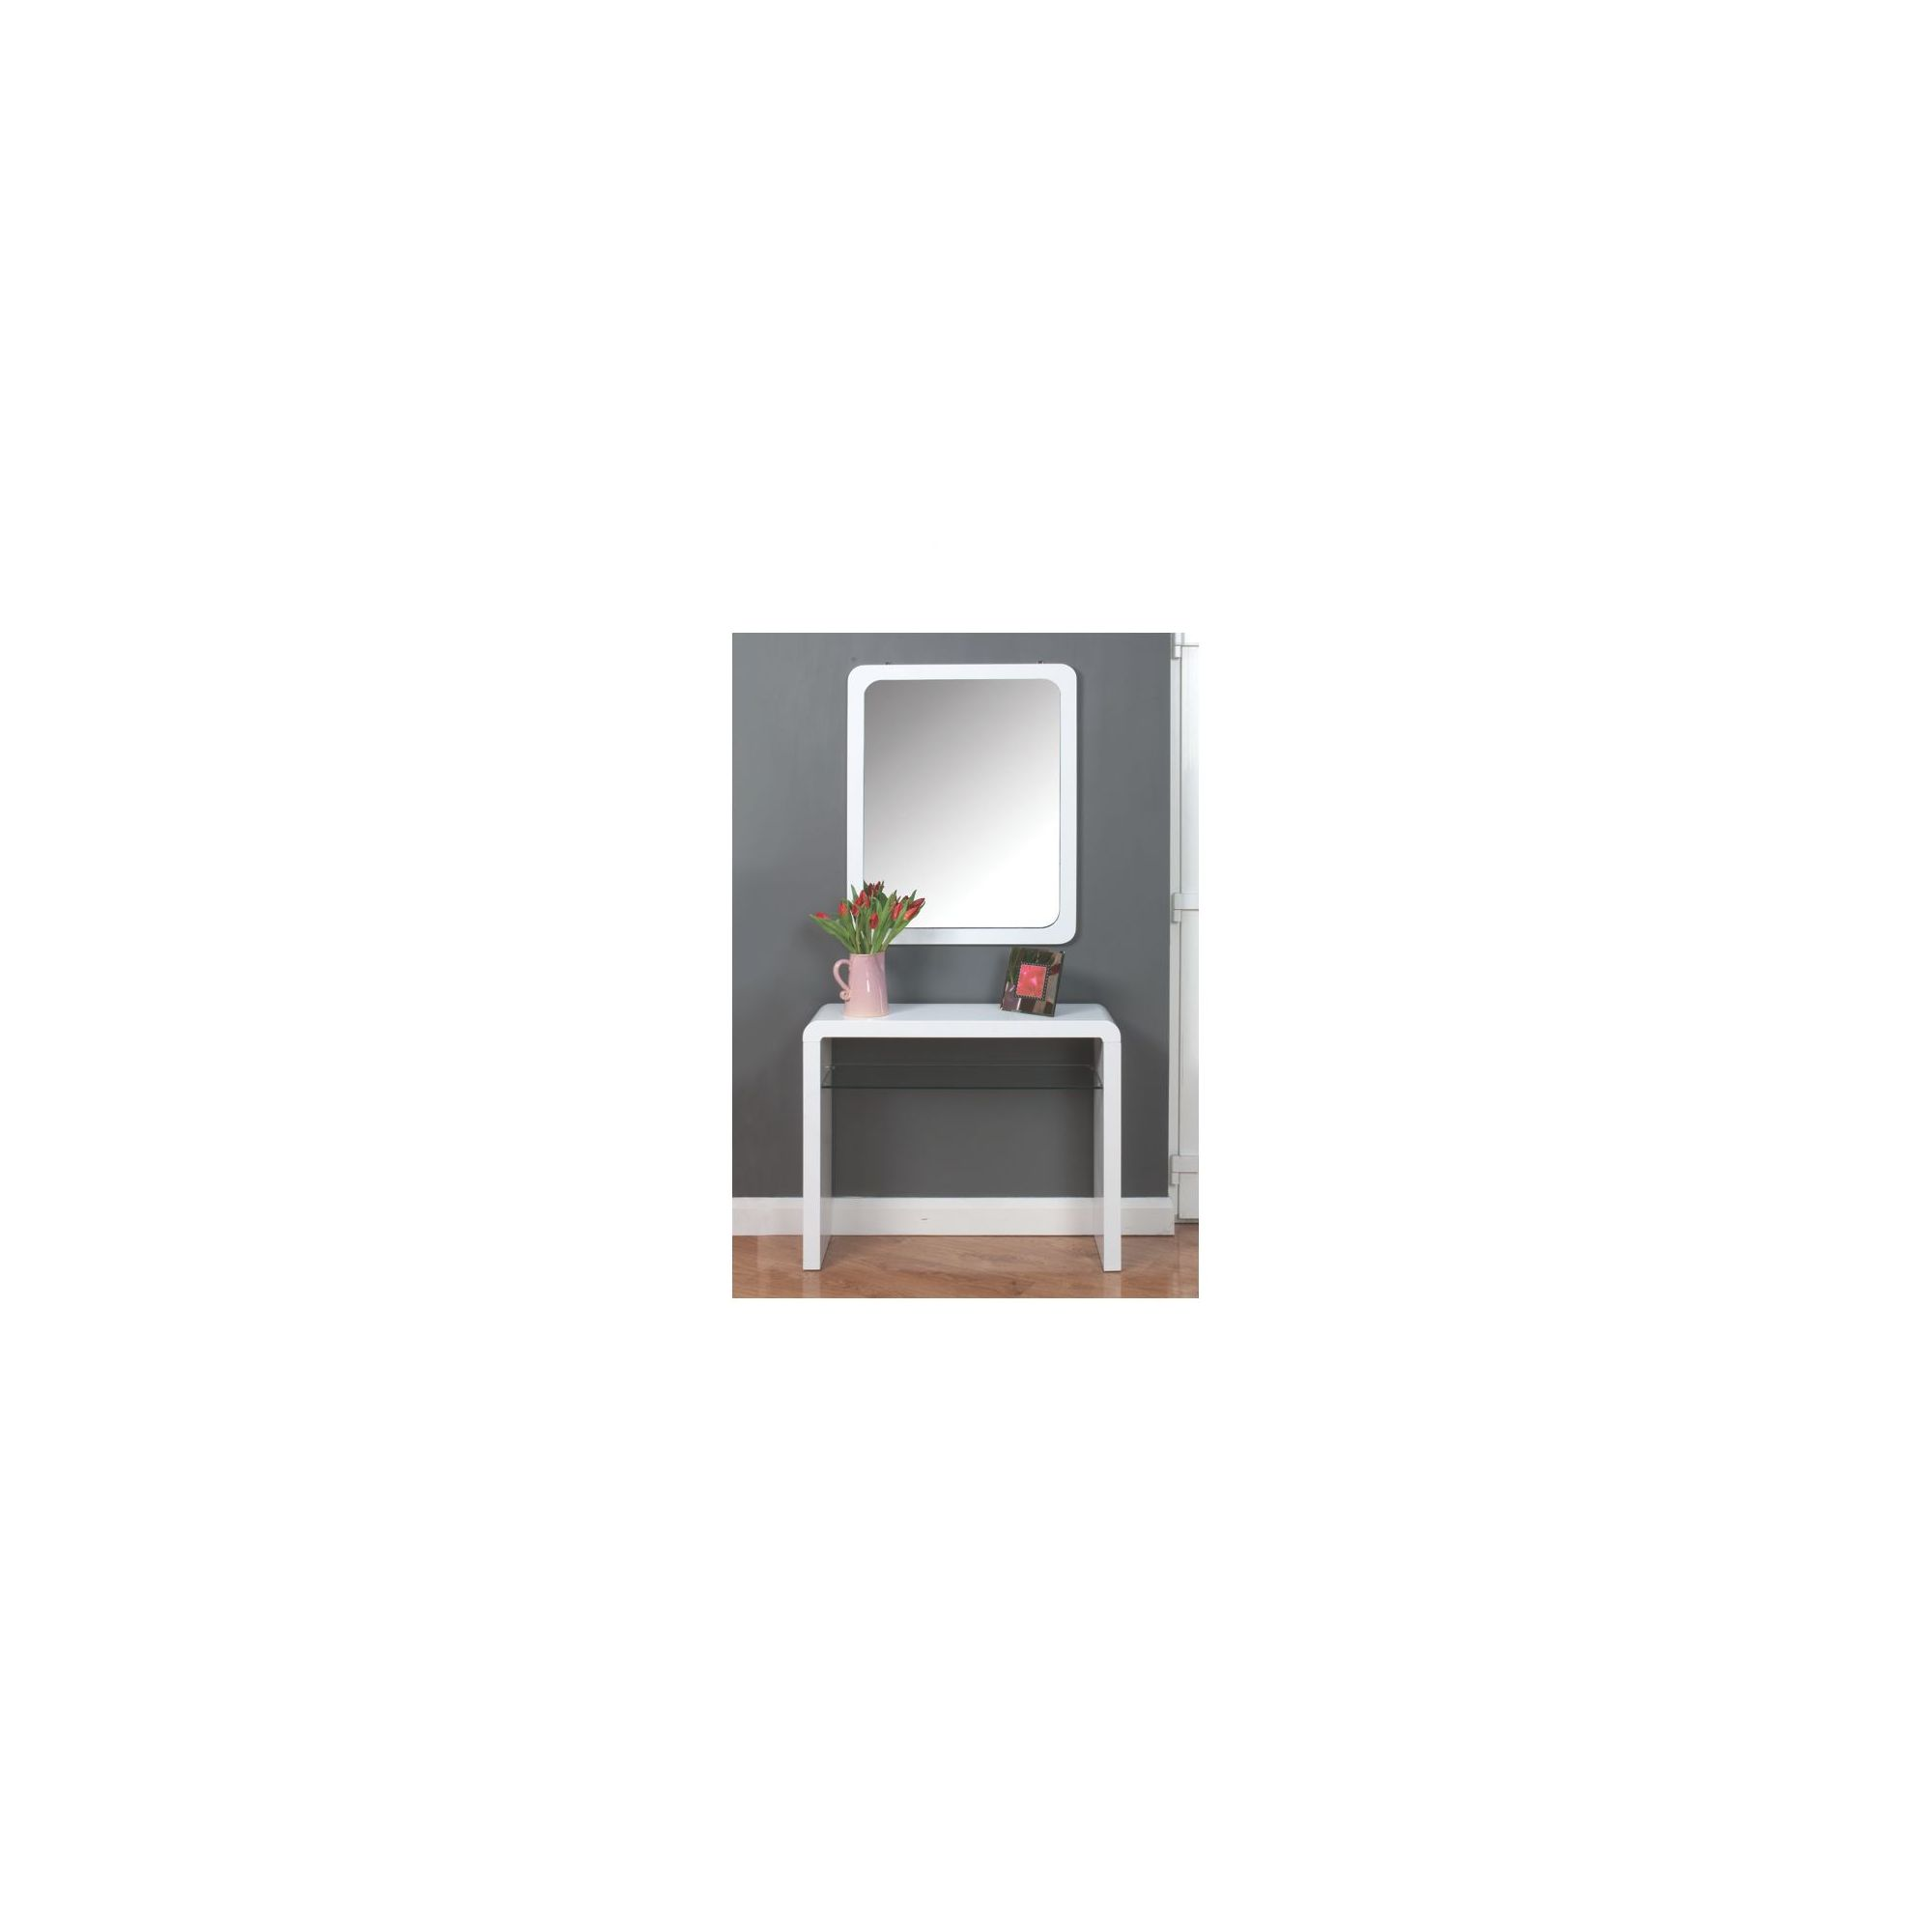 Elements Missouri Console Table with Mirror